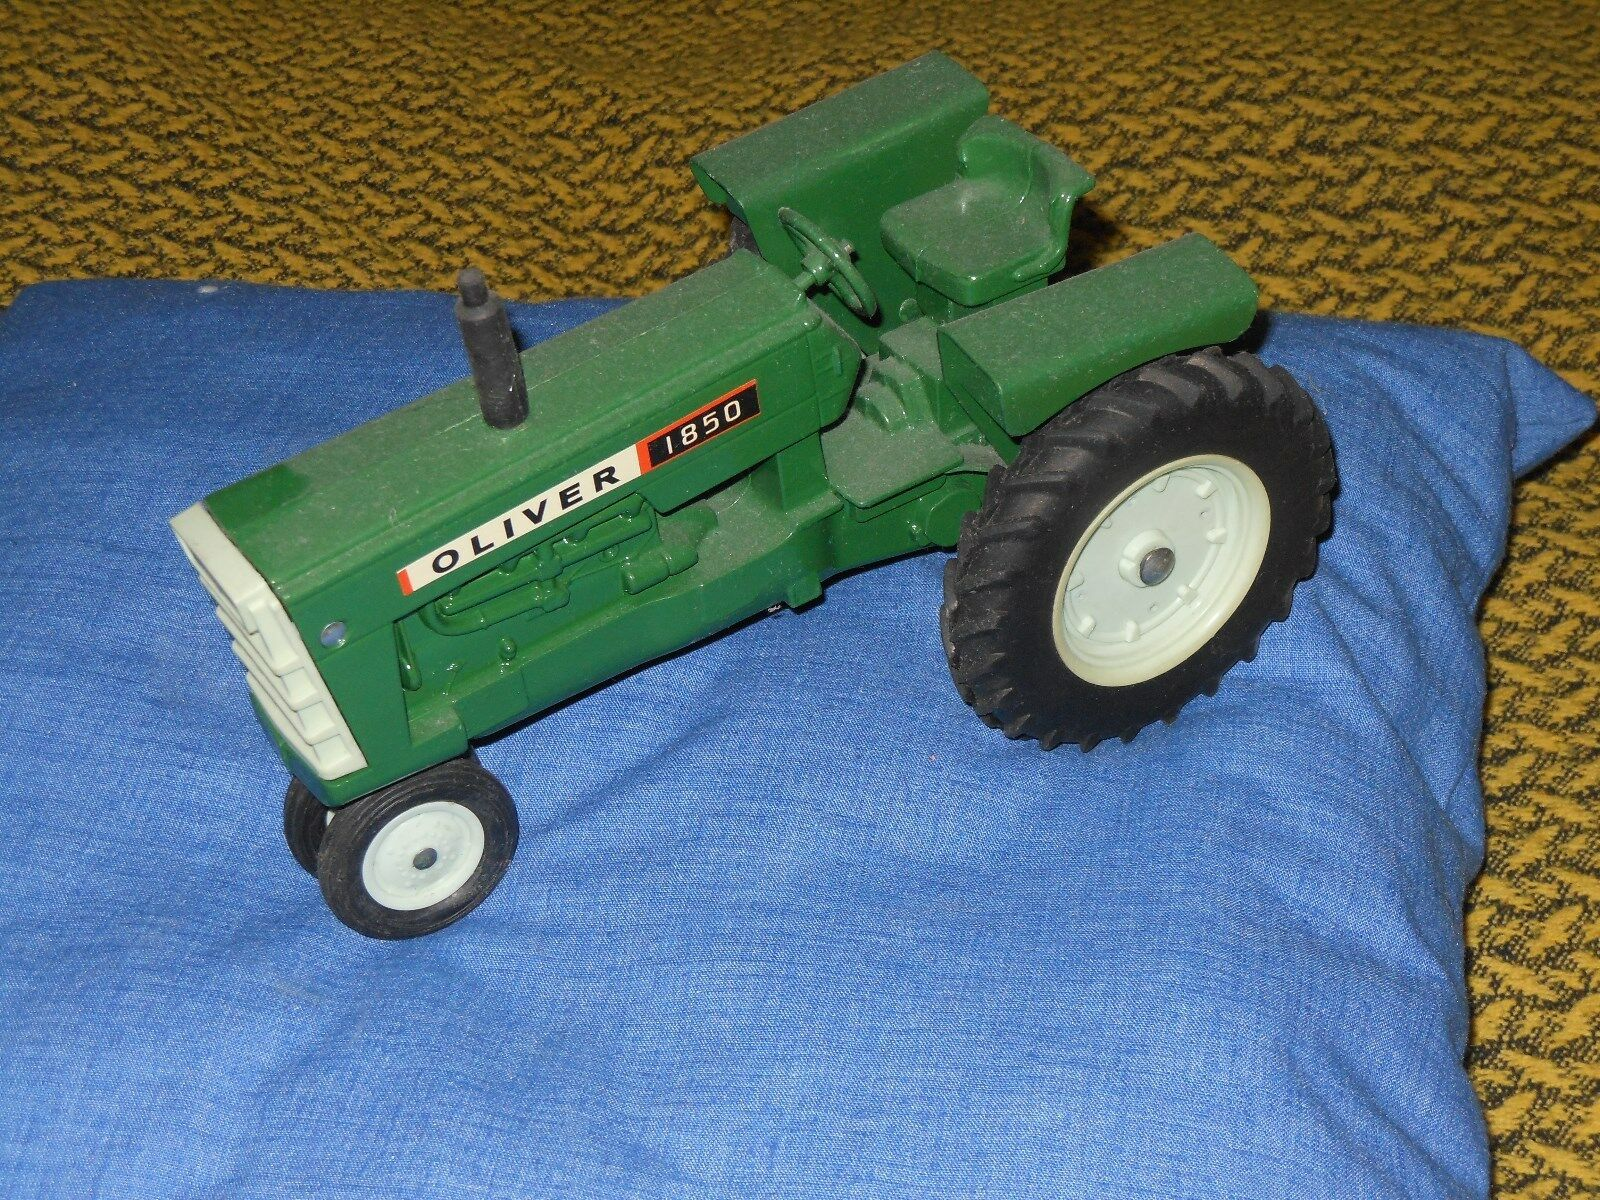 Oliver 1850 toy tractor  (White, Moline)   vintage 1970's